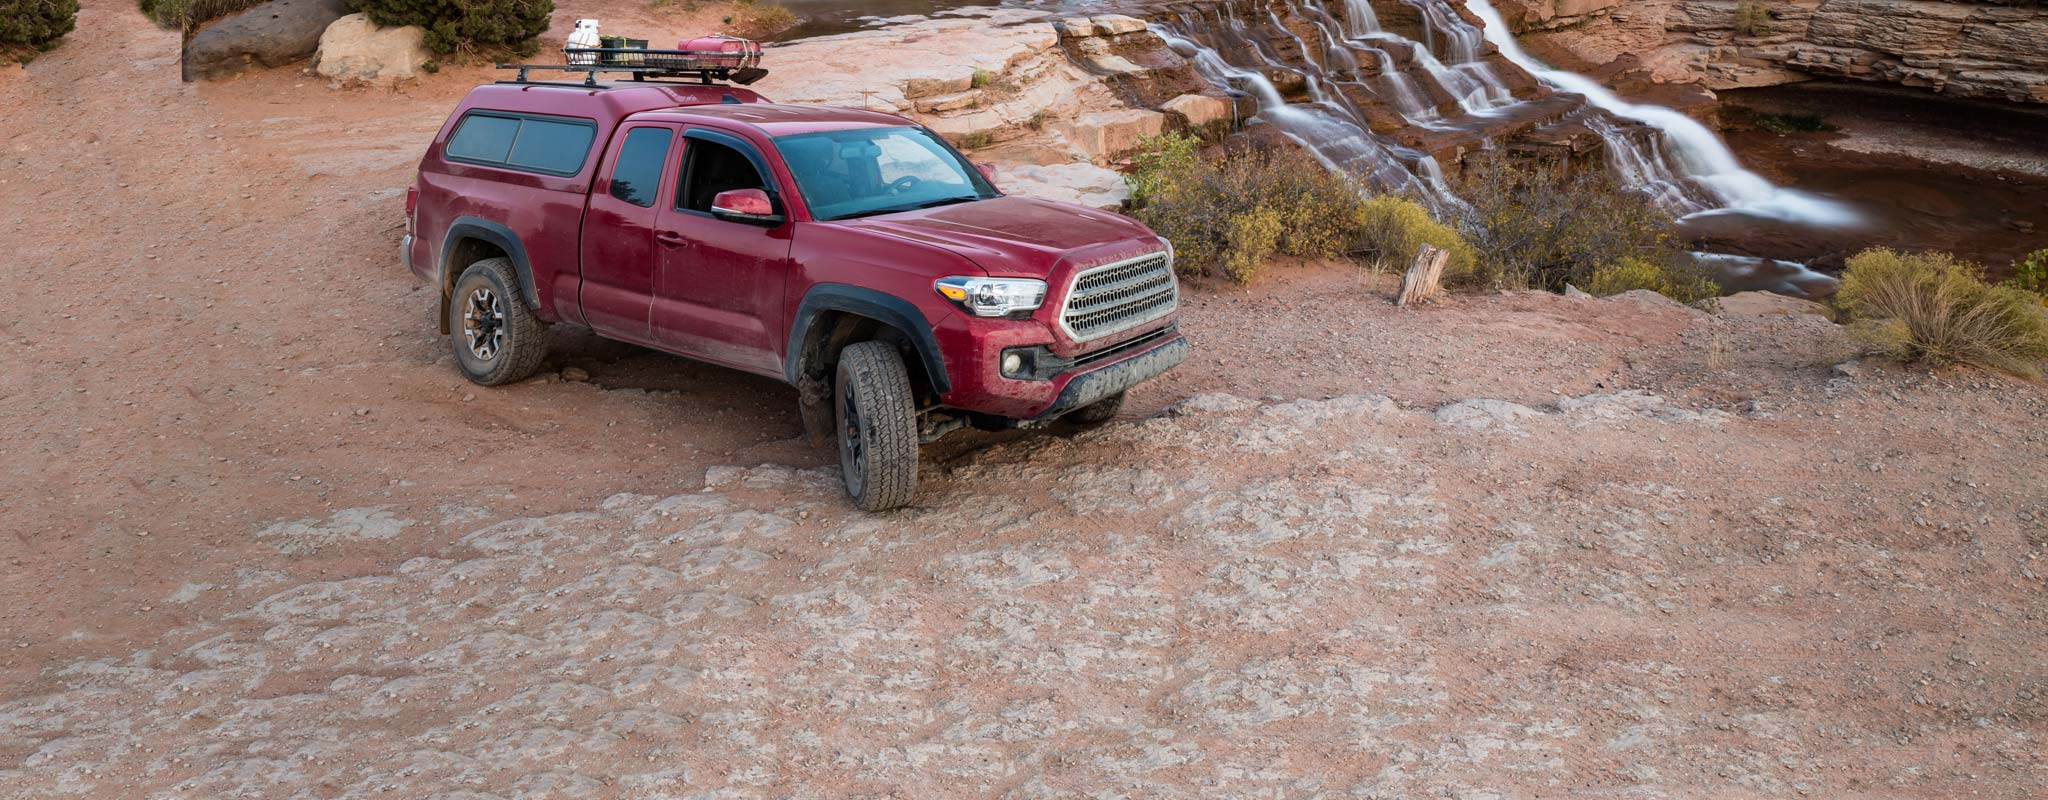 Red pickup with canopy on sandy ground near a waterfall.